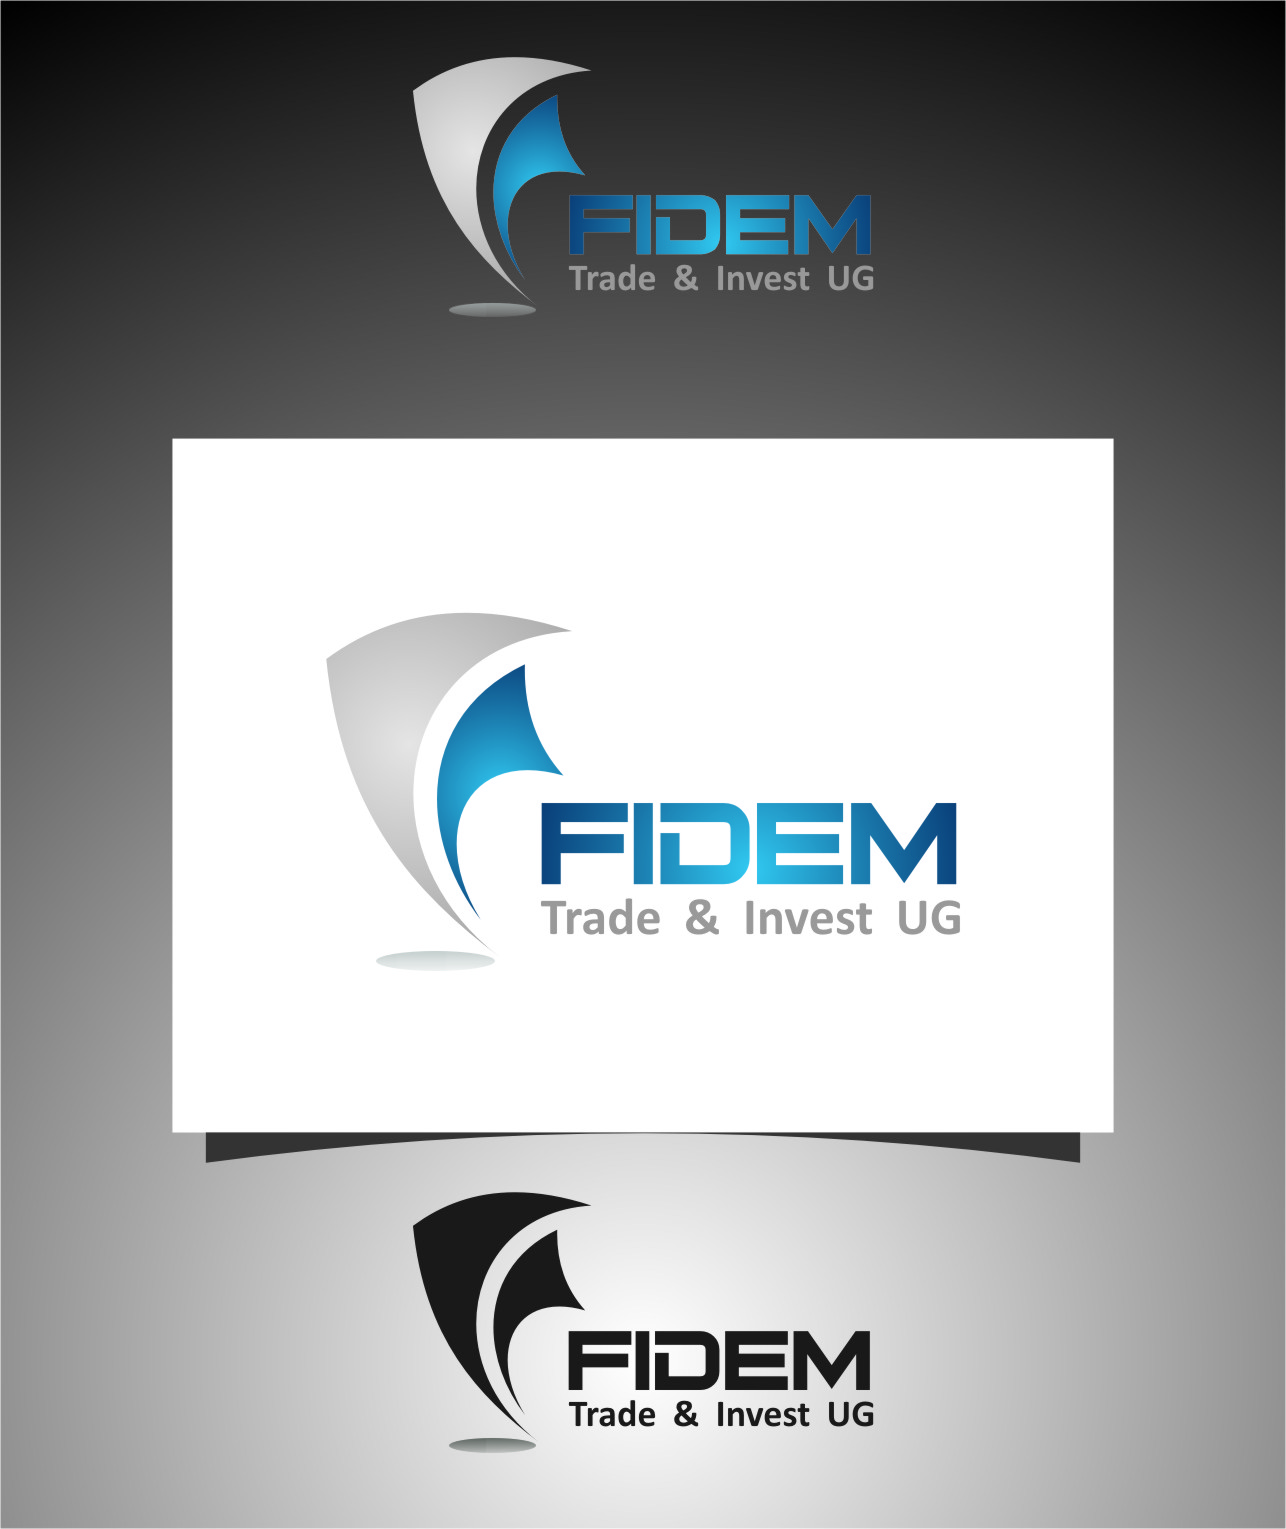 Logo Design by Ngepet_art - Entry No. 192 in the Logo Design Contest Professional Logo Design for FIDEM Trade & Invest UG.